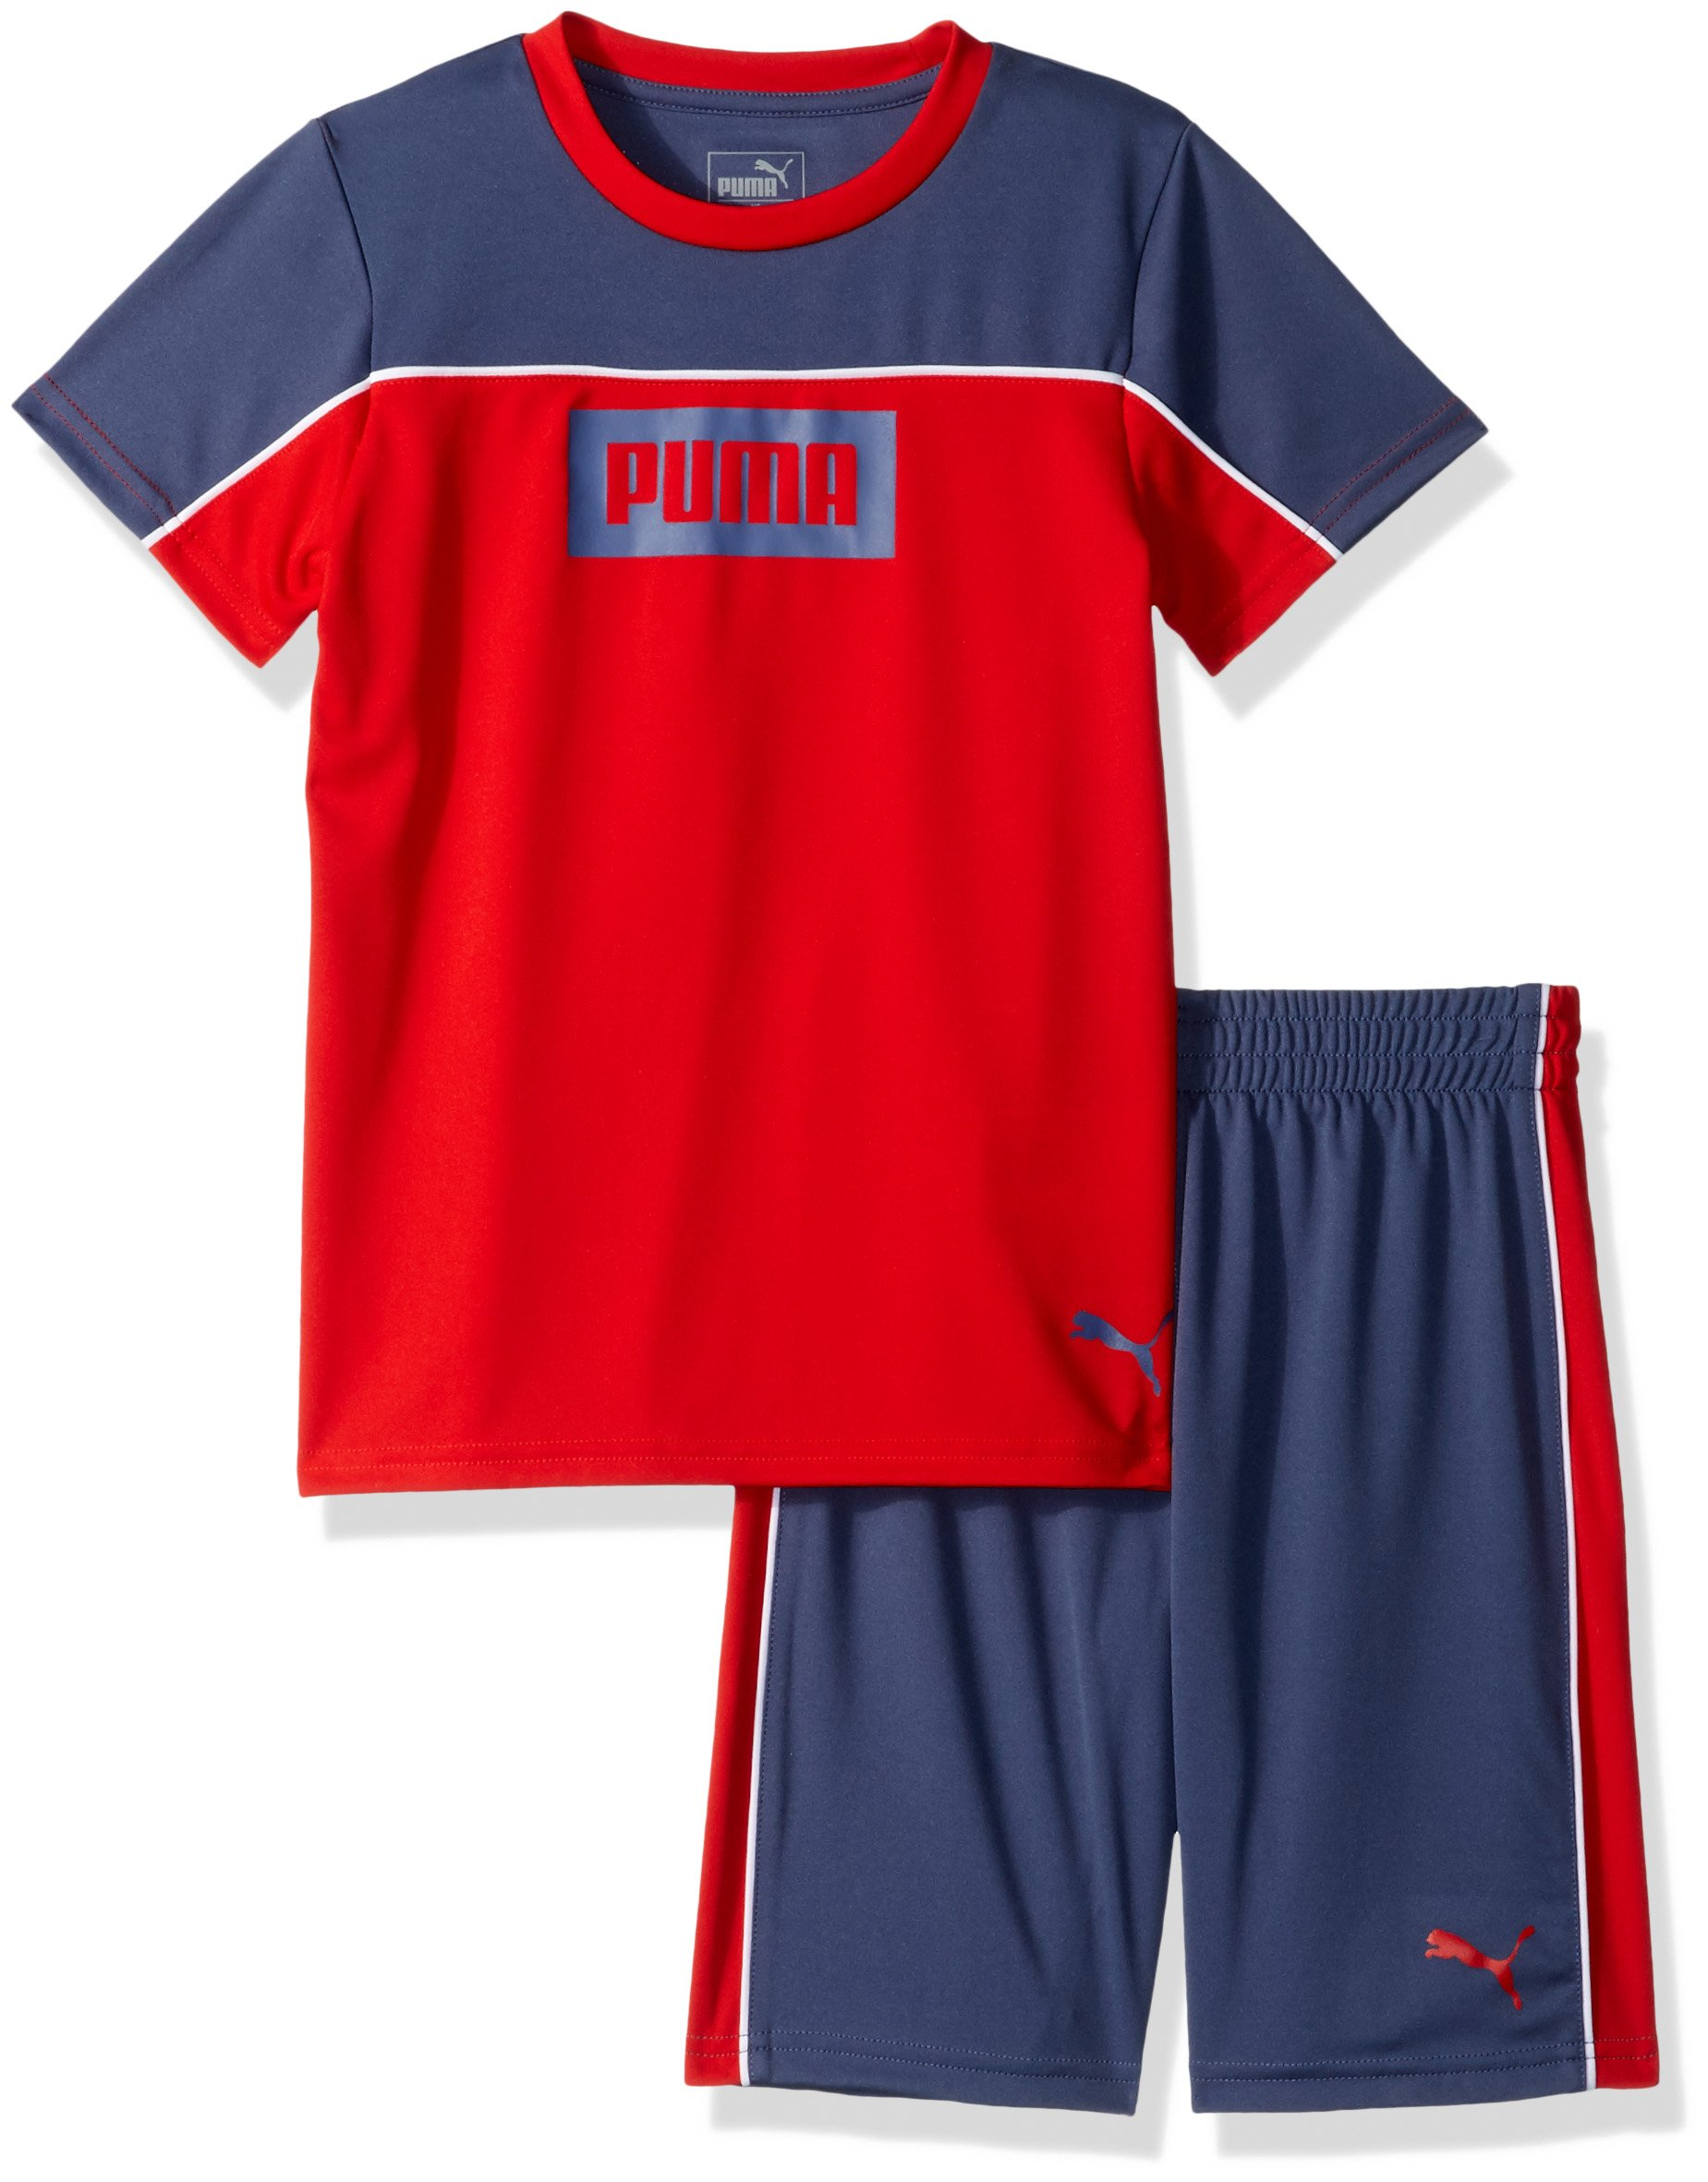 PUMA Toddler Boys' Rebel 2 Piece Set, Flame Scarlet, 4T by PUMA